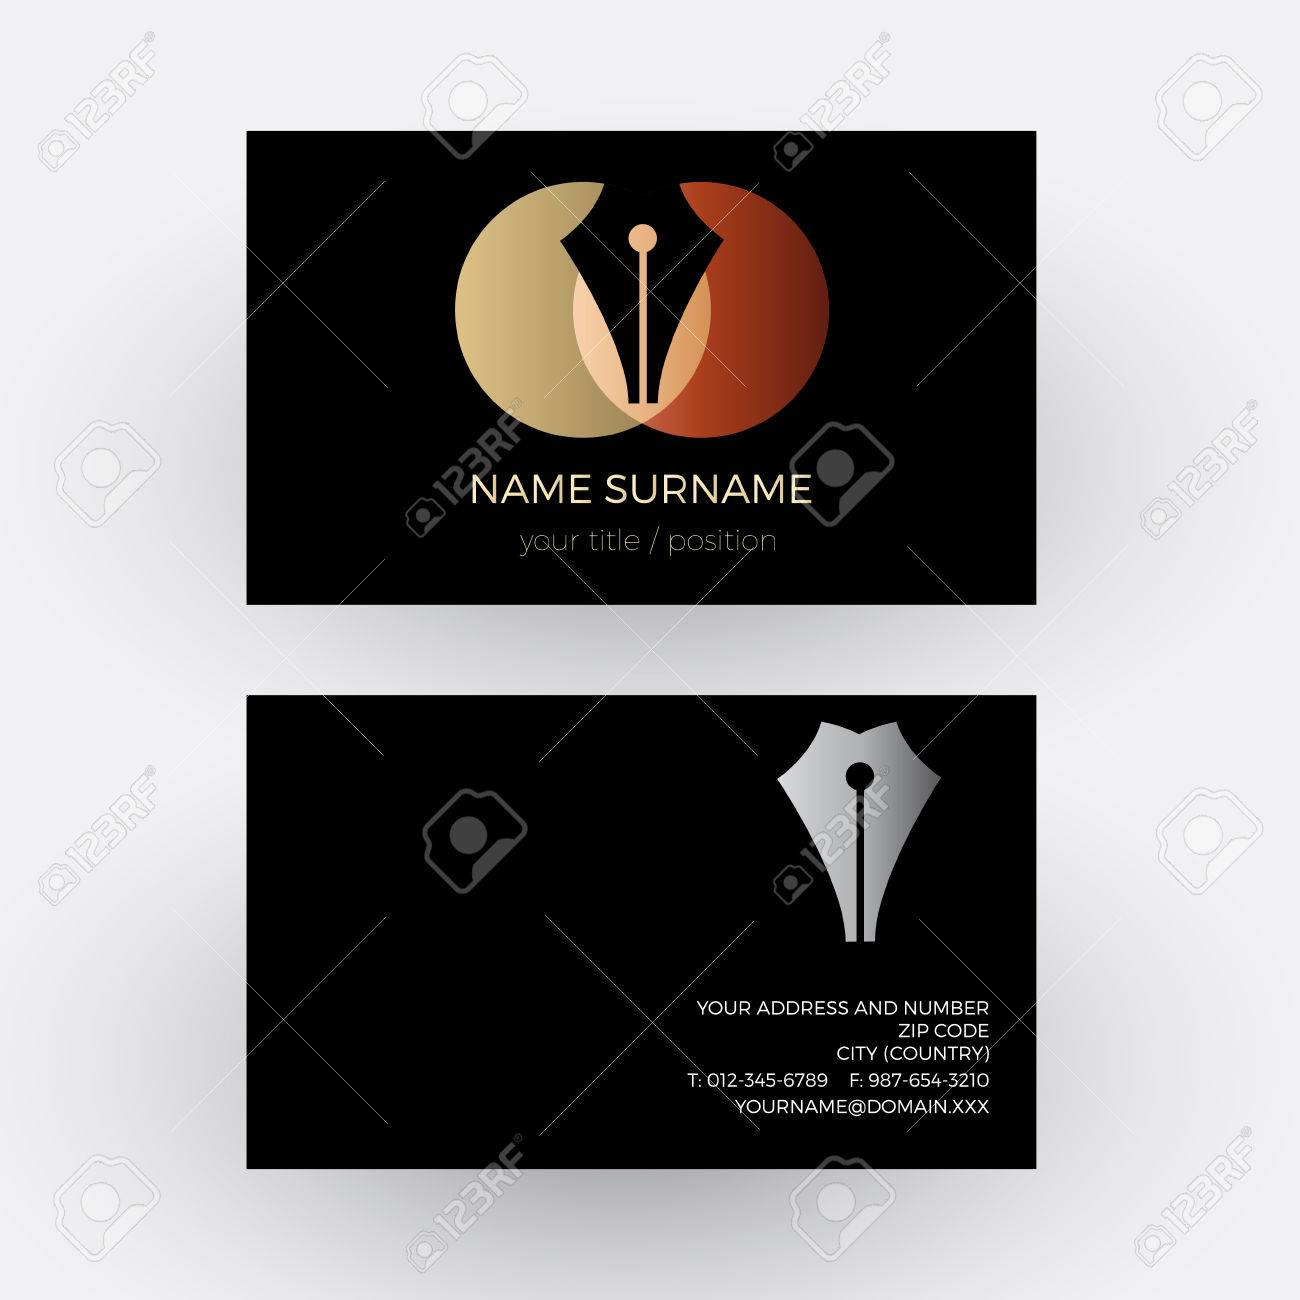 Writer Business Cards Images - Free Business Cards